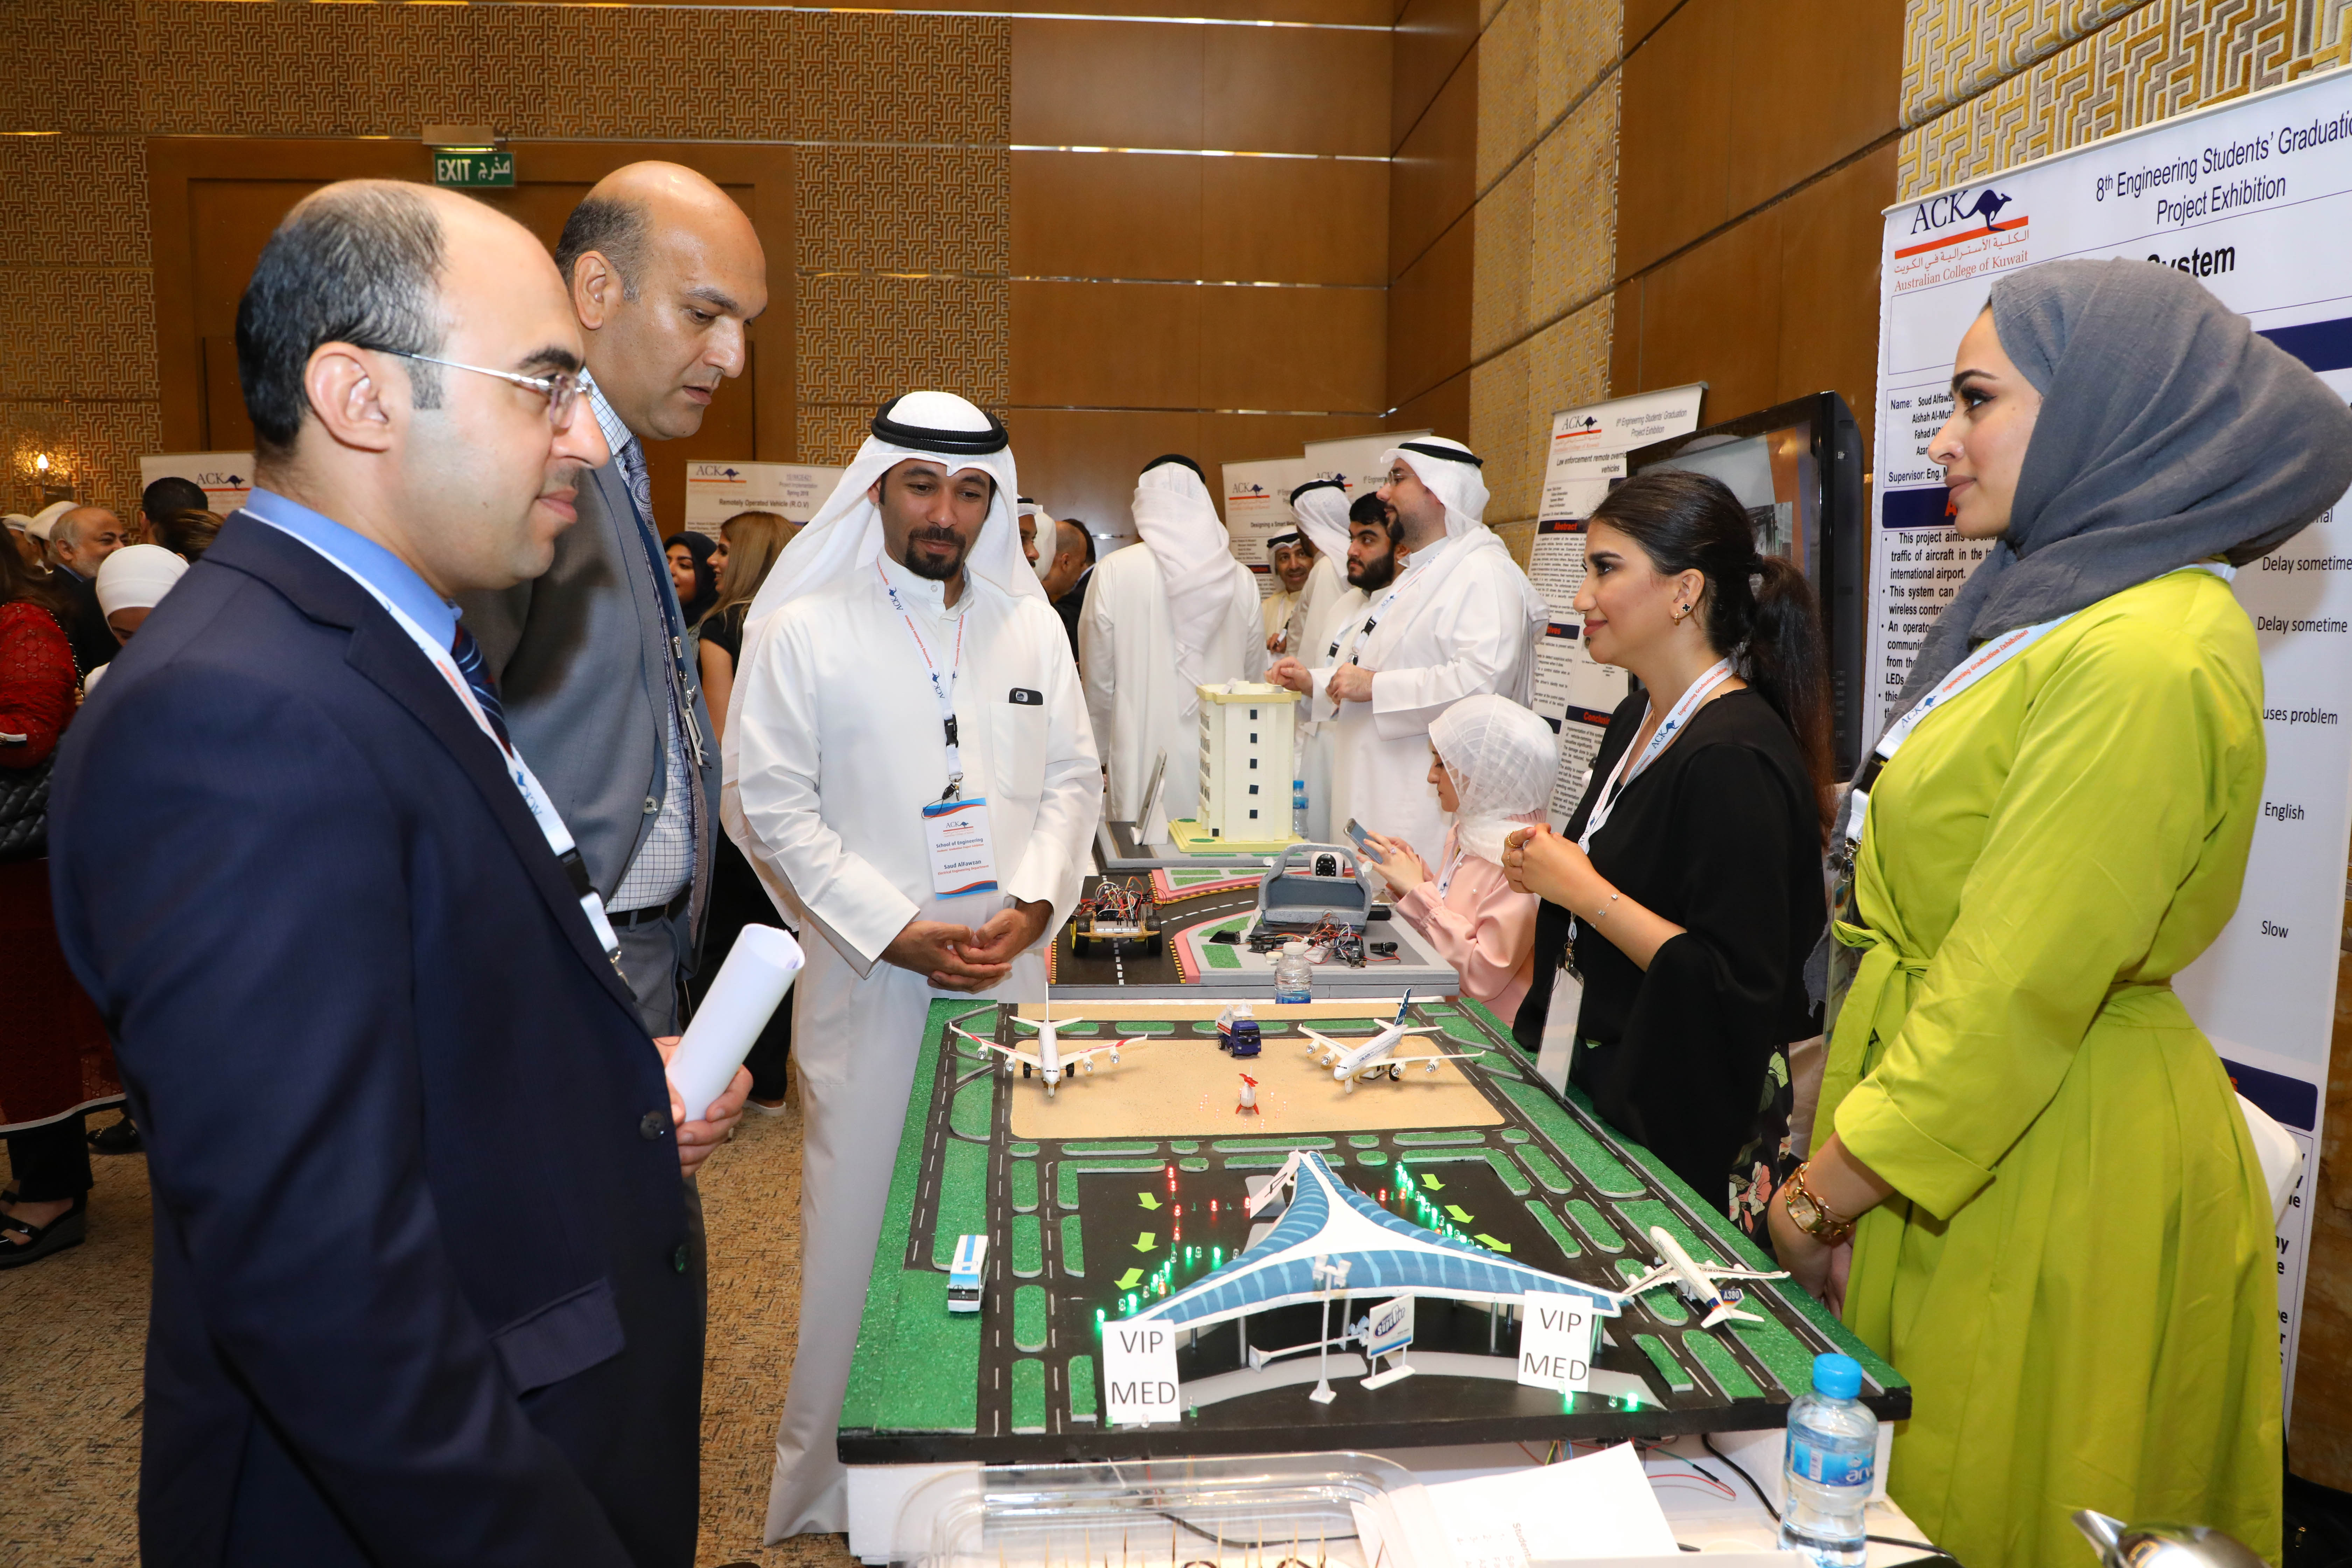 ACK holds Engineering Students' Graduation Project Expo